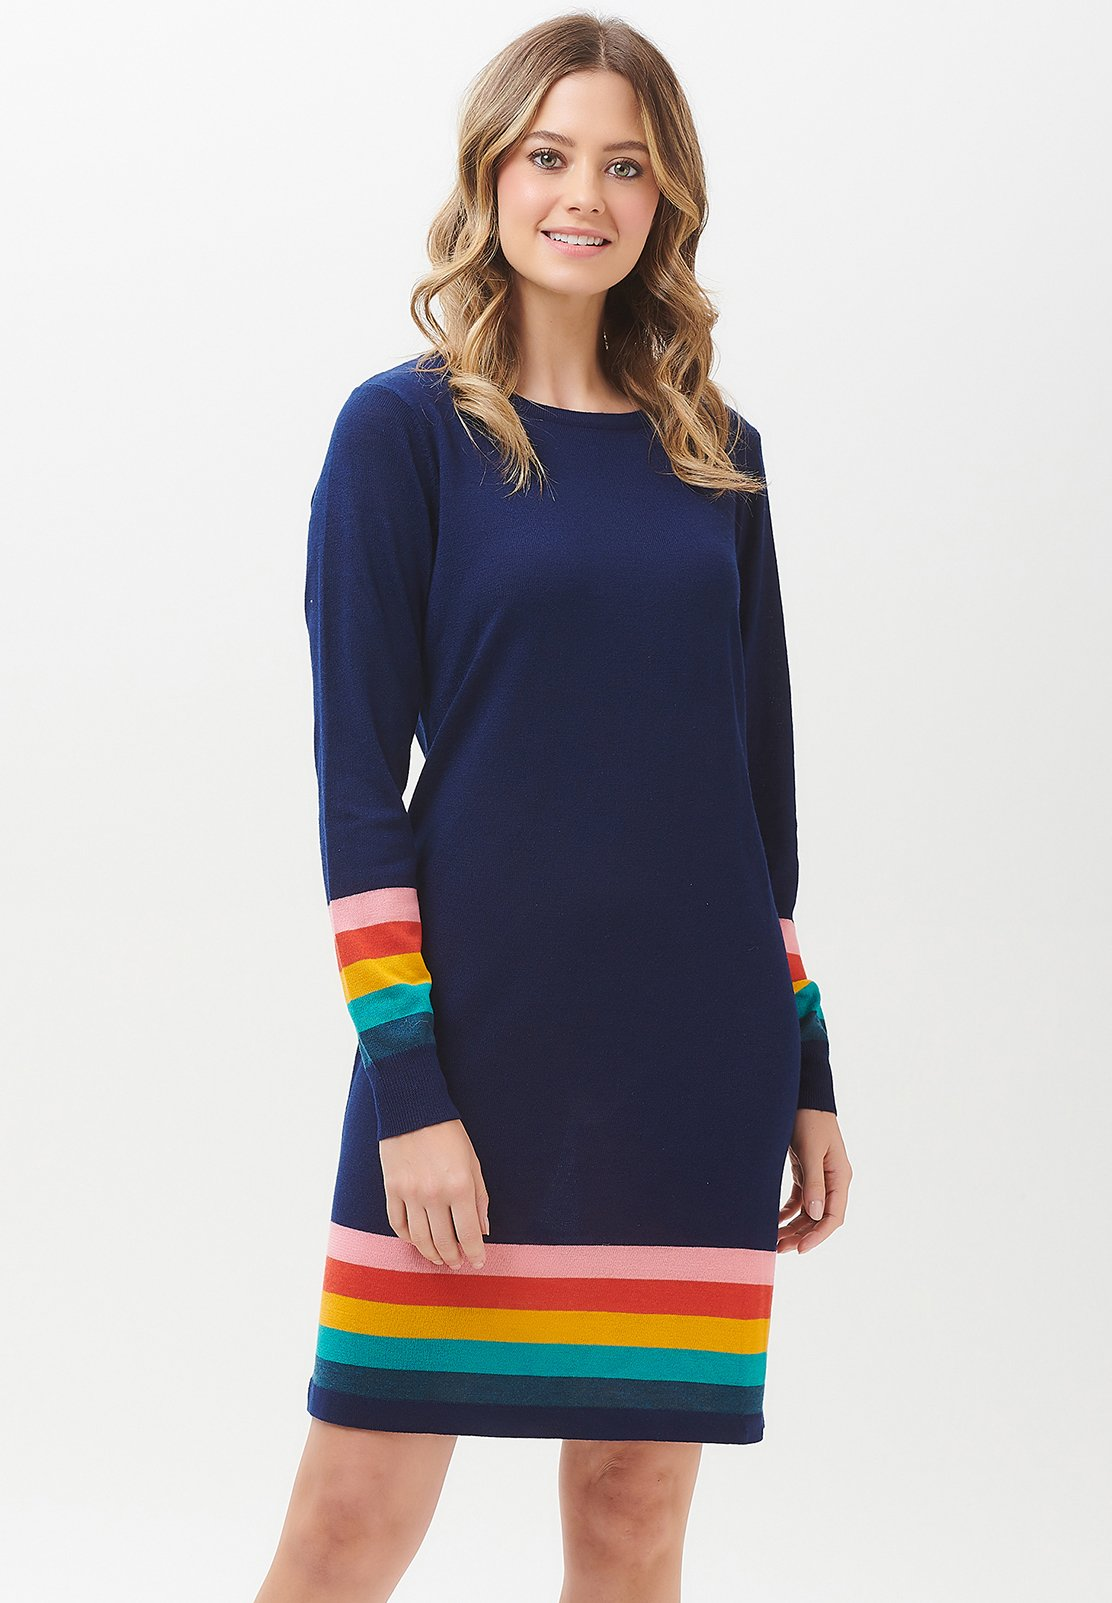 Sugarhill Brighton Evie Summer Stripe Knit Dress - Sukienka Dzianinowa Navy